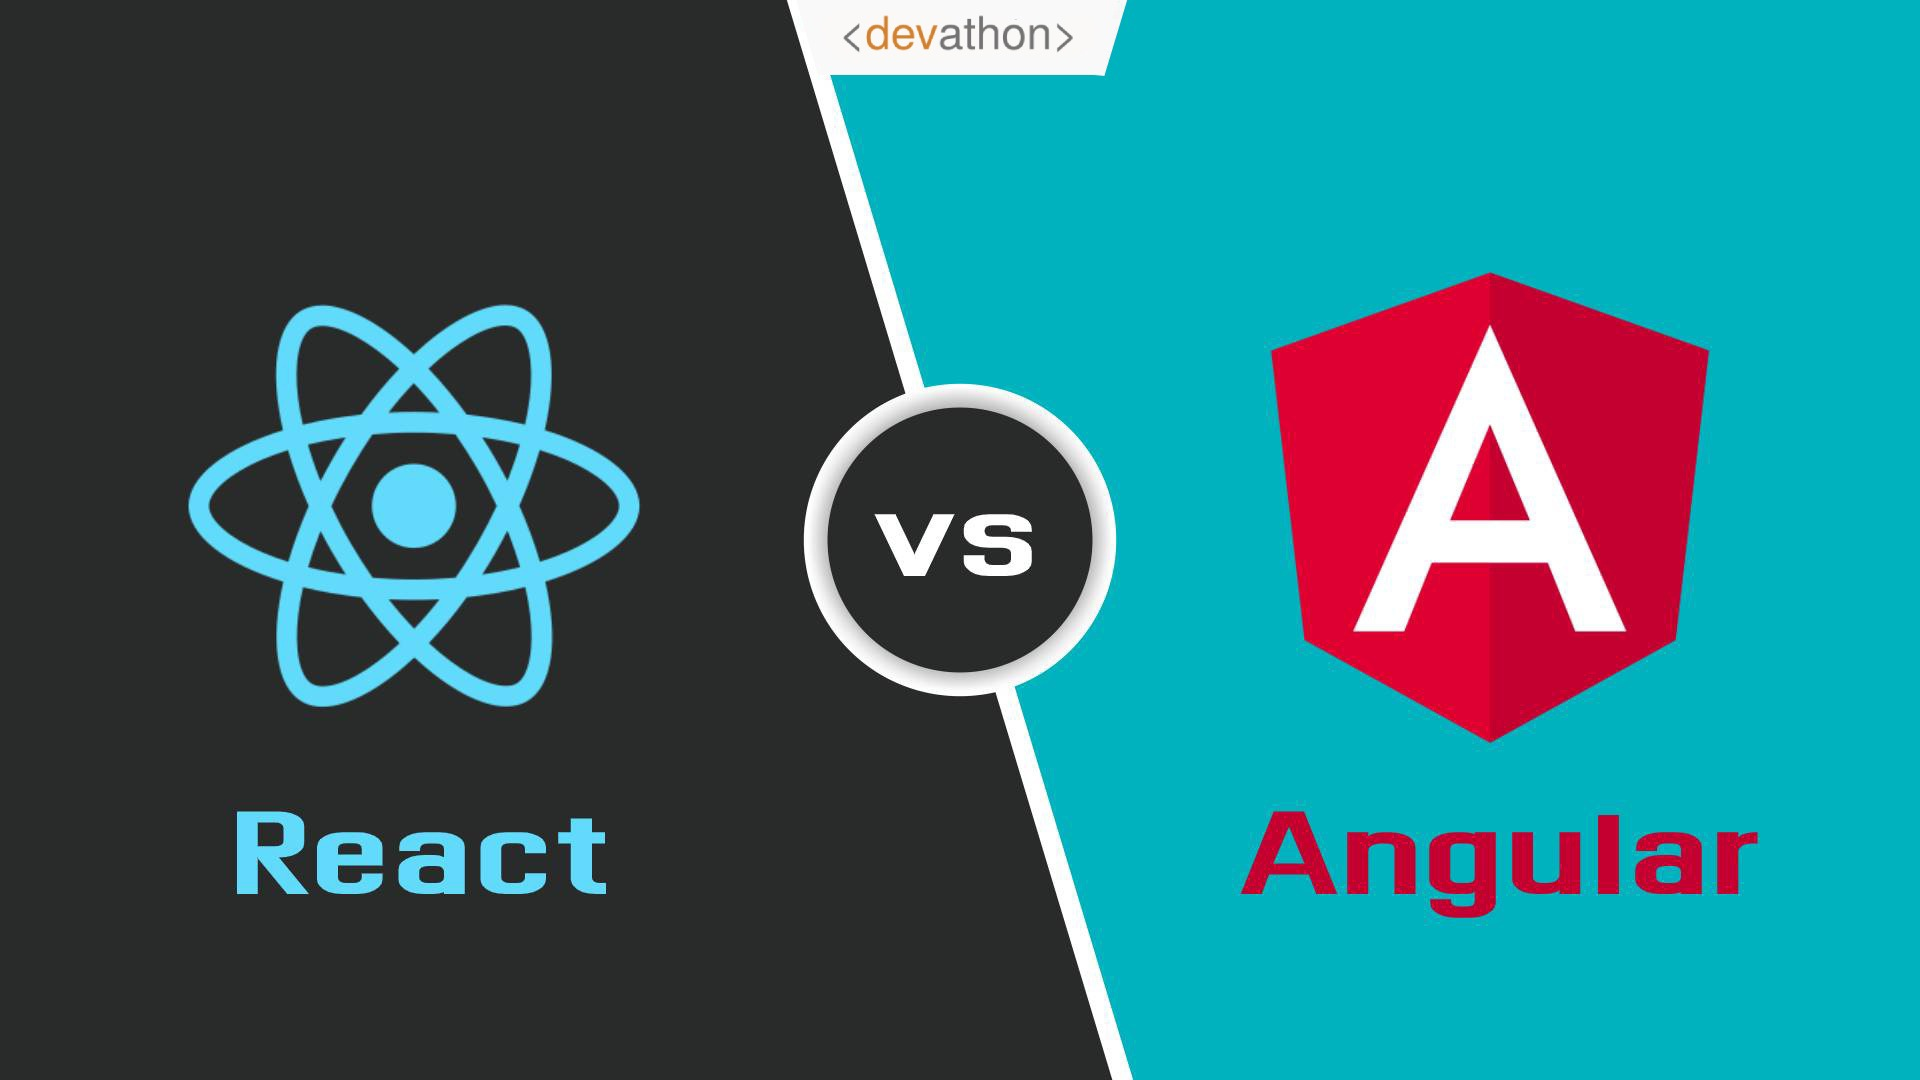 react-vs-angular-devathon